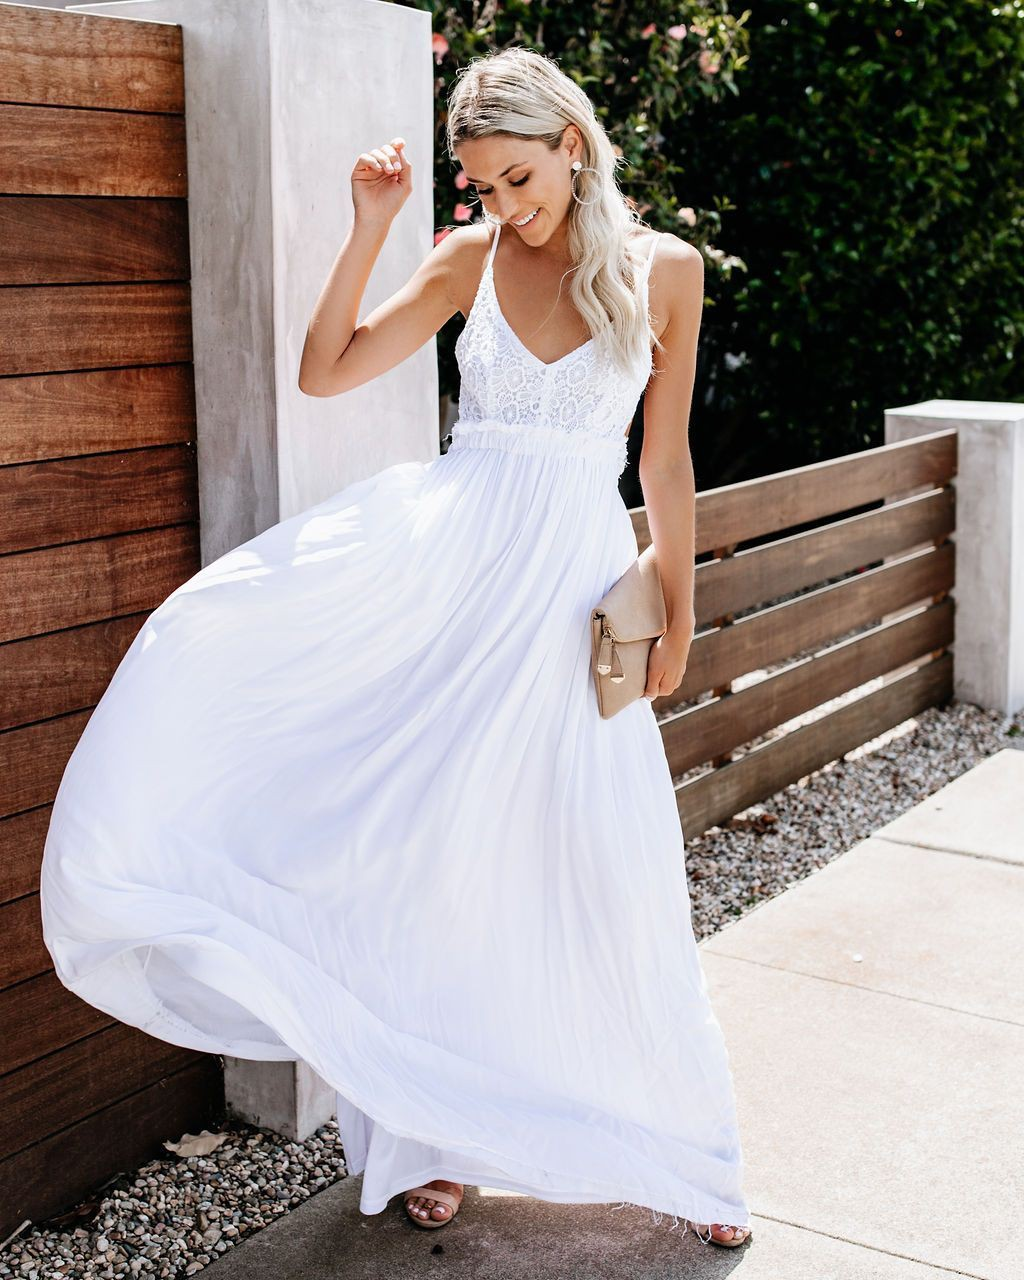 White outfit ideas with bridal party dress, bridal clothing, cocktail dress